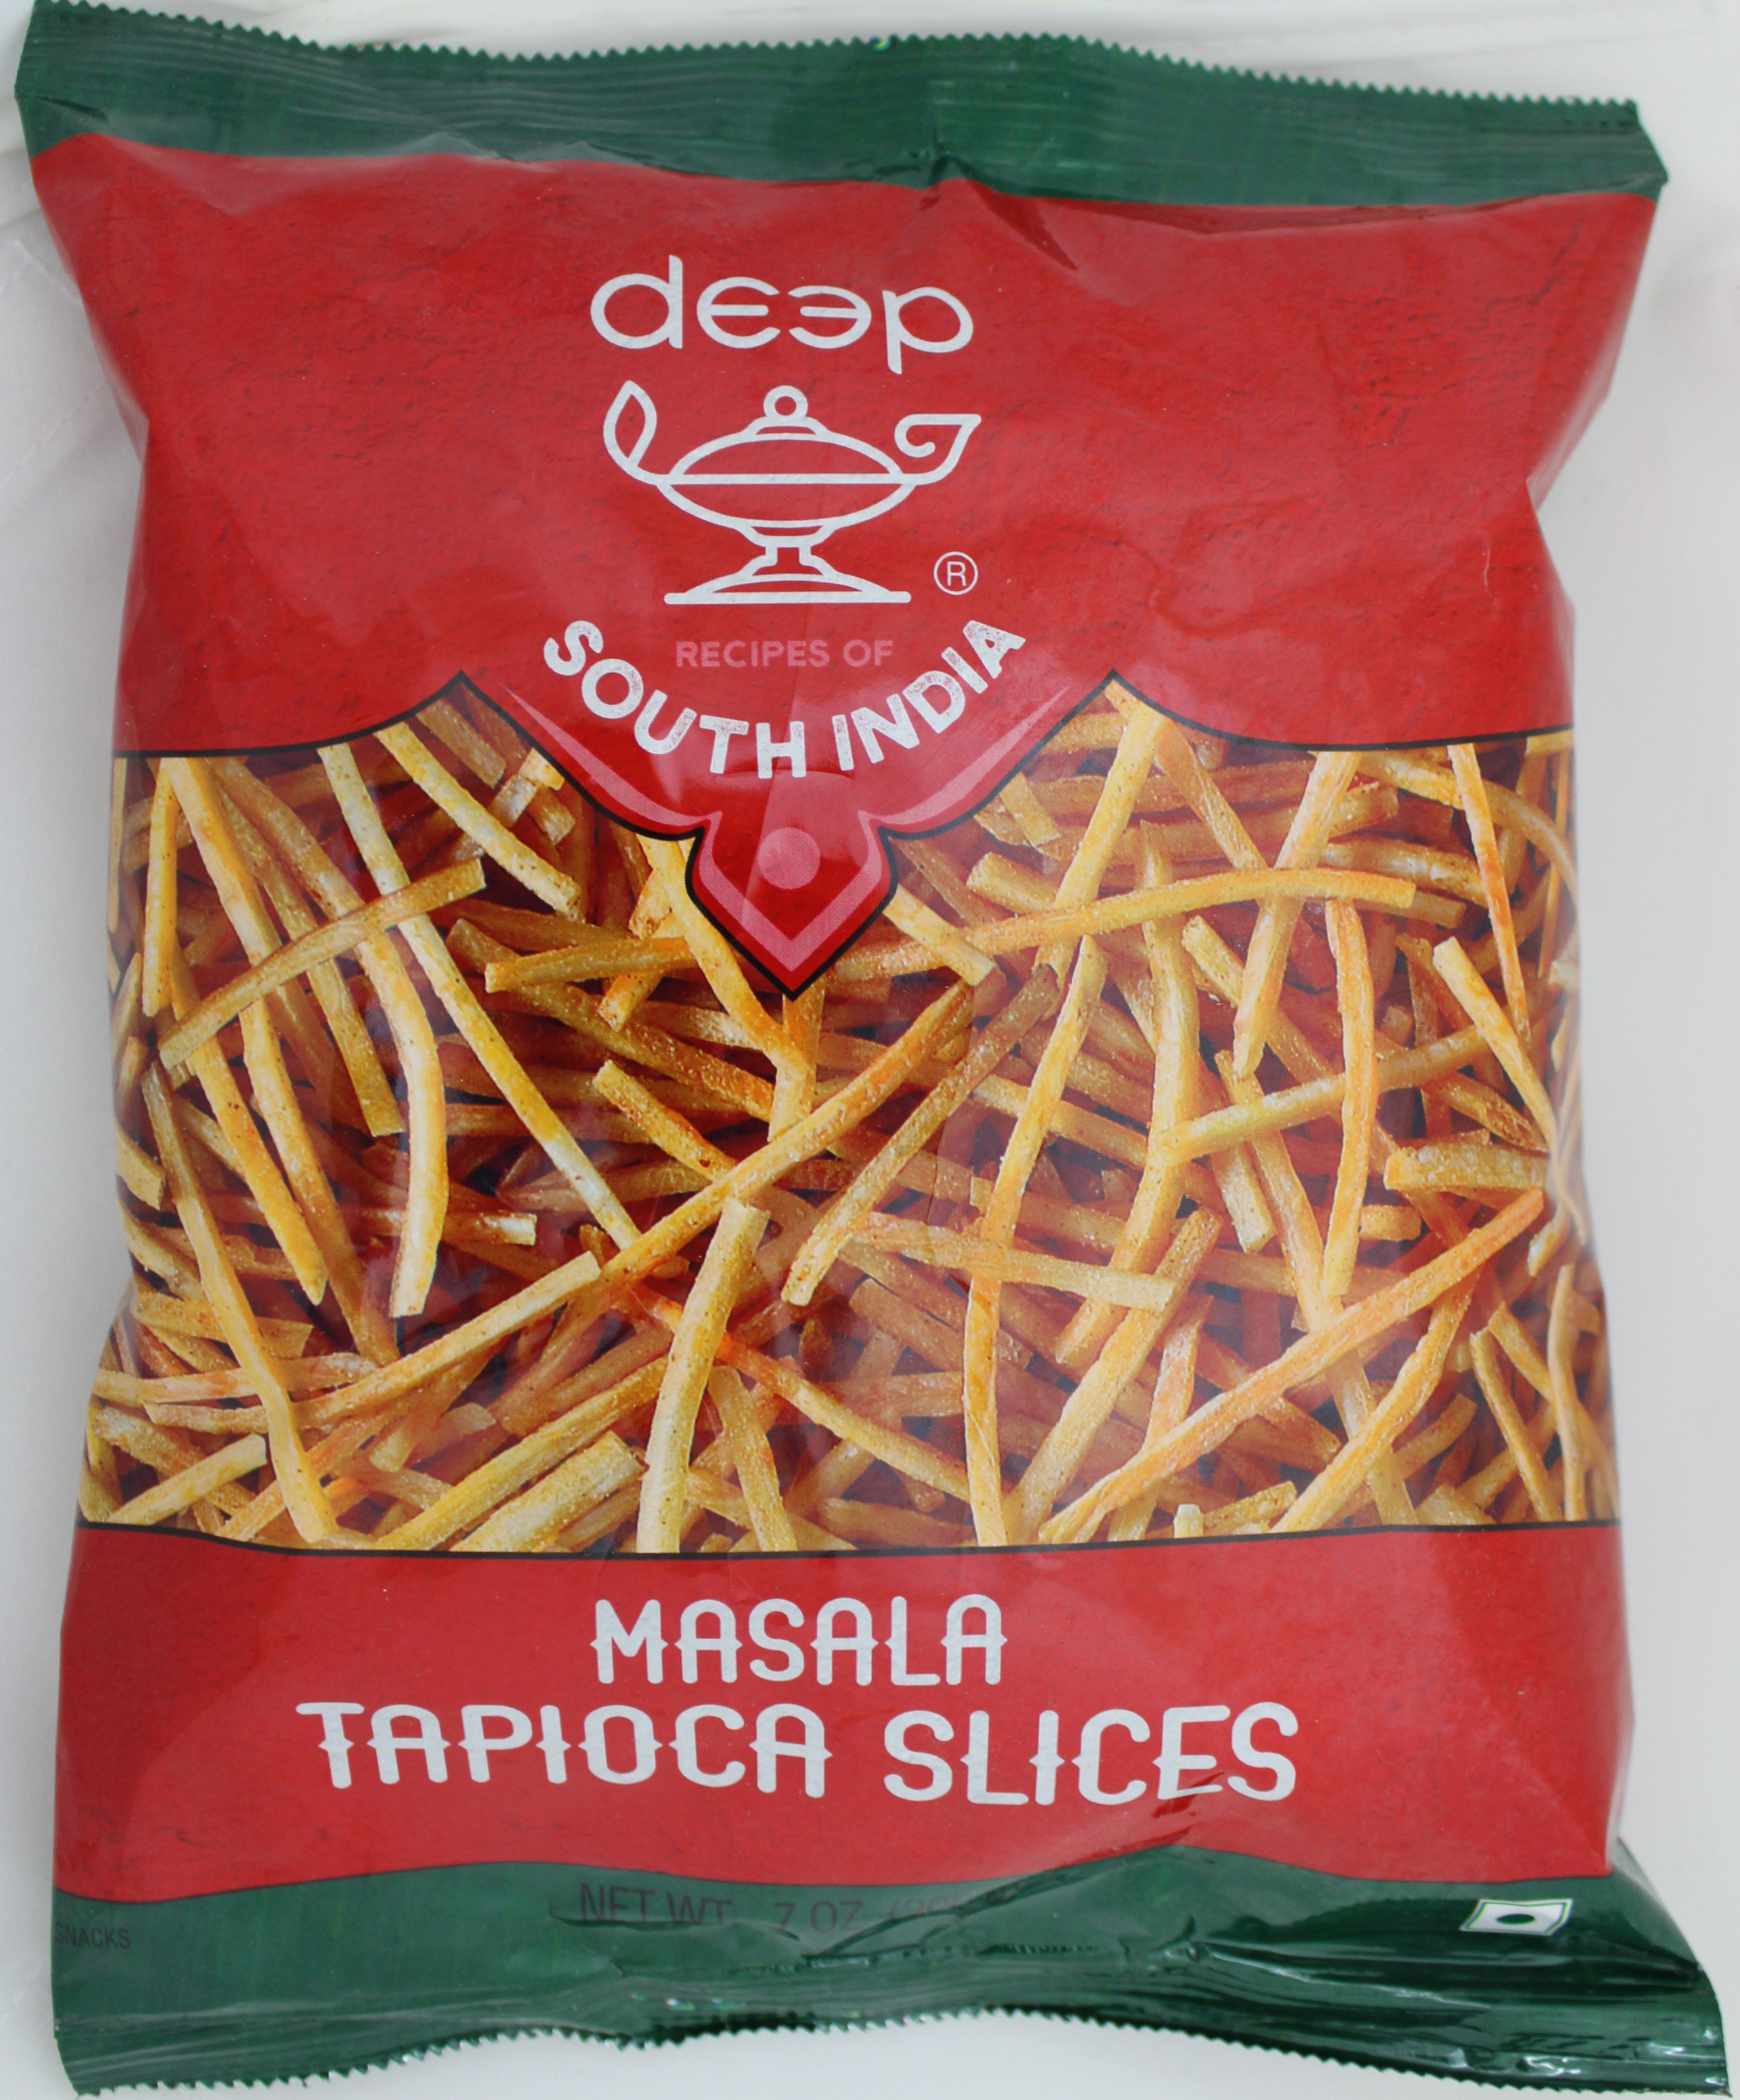 Tapioca Slices Masala 7 Oz.